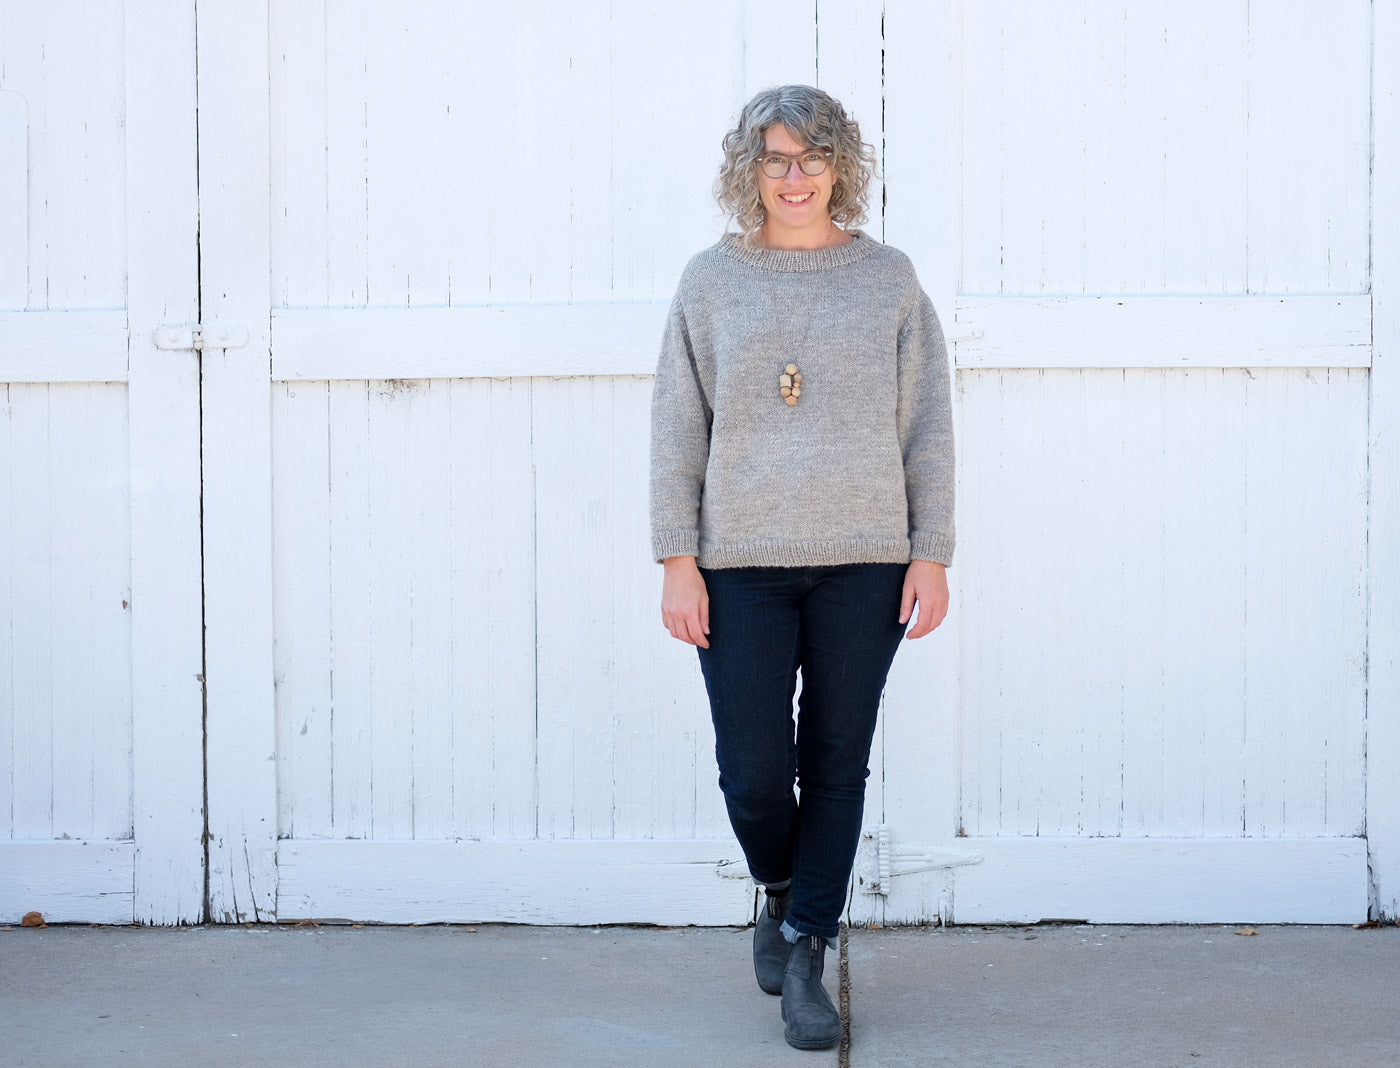 Jaime's Fancydrygoods Junegrass KAL Sweater